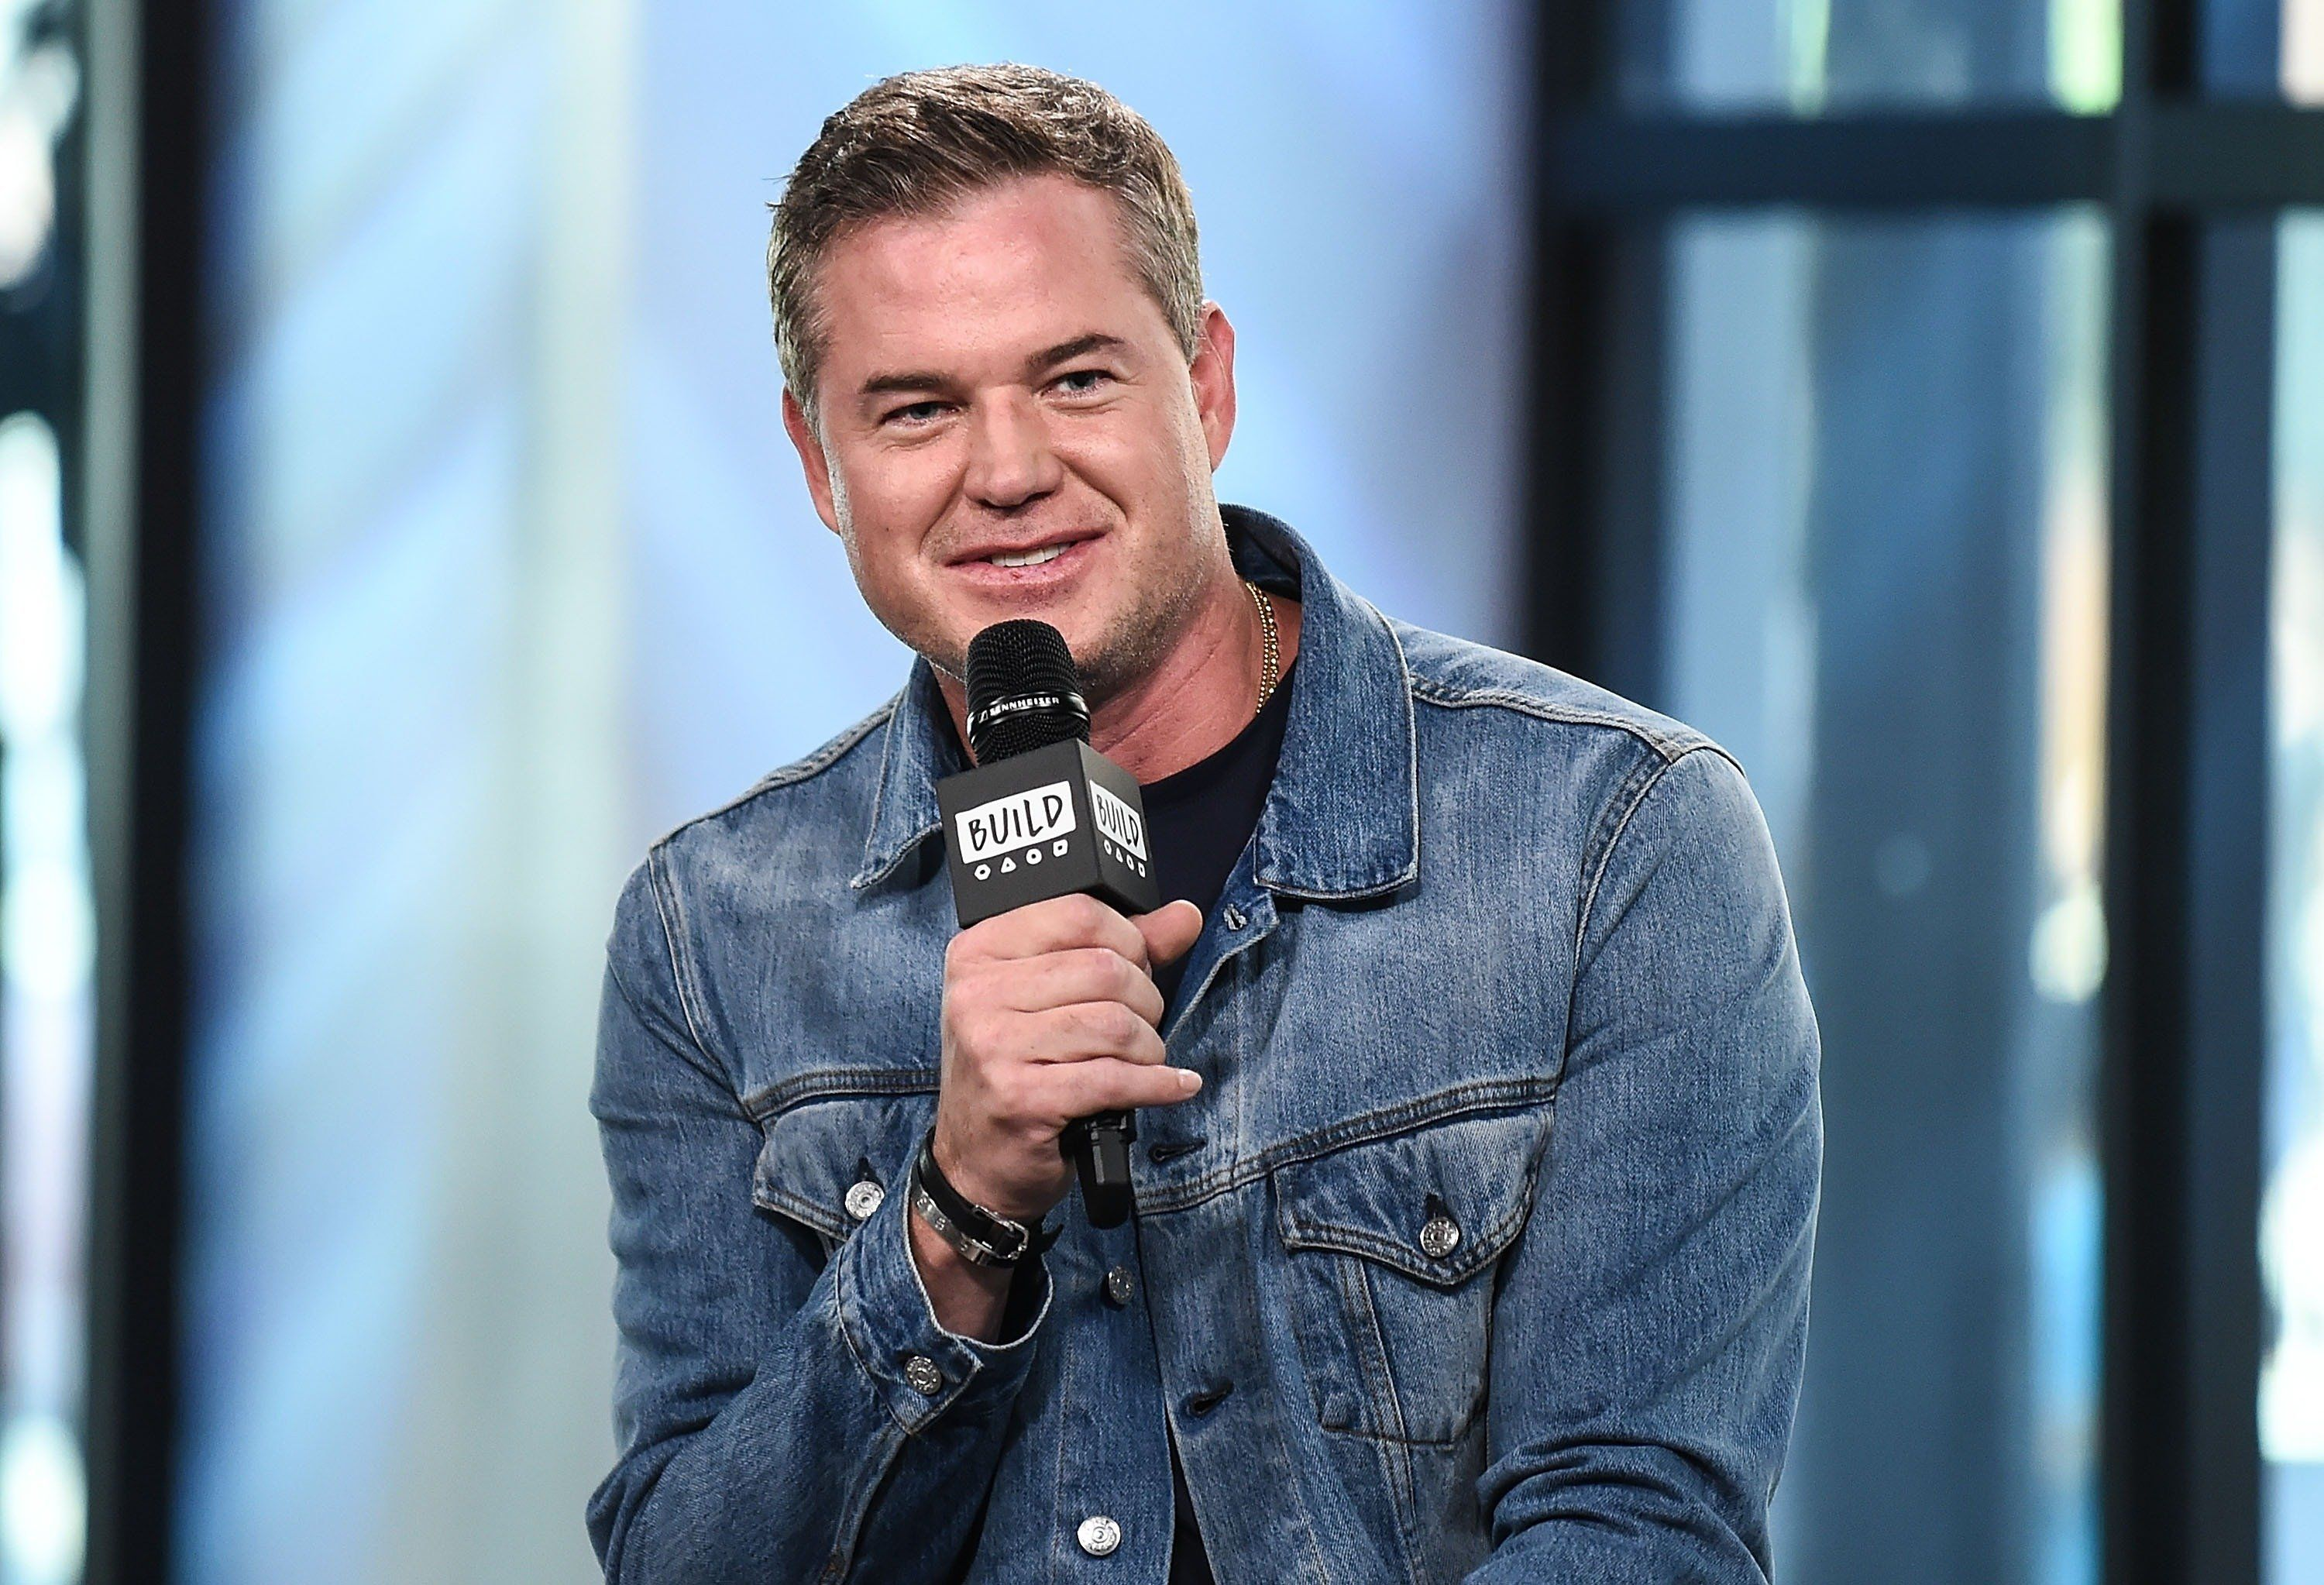 NEW YORK, NY - AUGUST 01:  Eric Dane attends the Build Series to discuss his show 'The Last Ship' at Build Studio on August 1, 2017 in New York City.  (Photo by Daniel Zuchnik/WireImage)